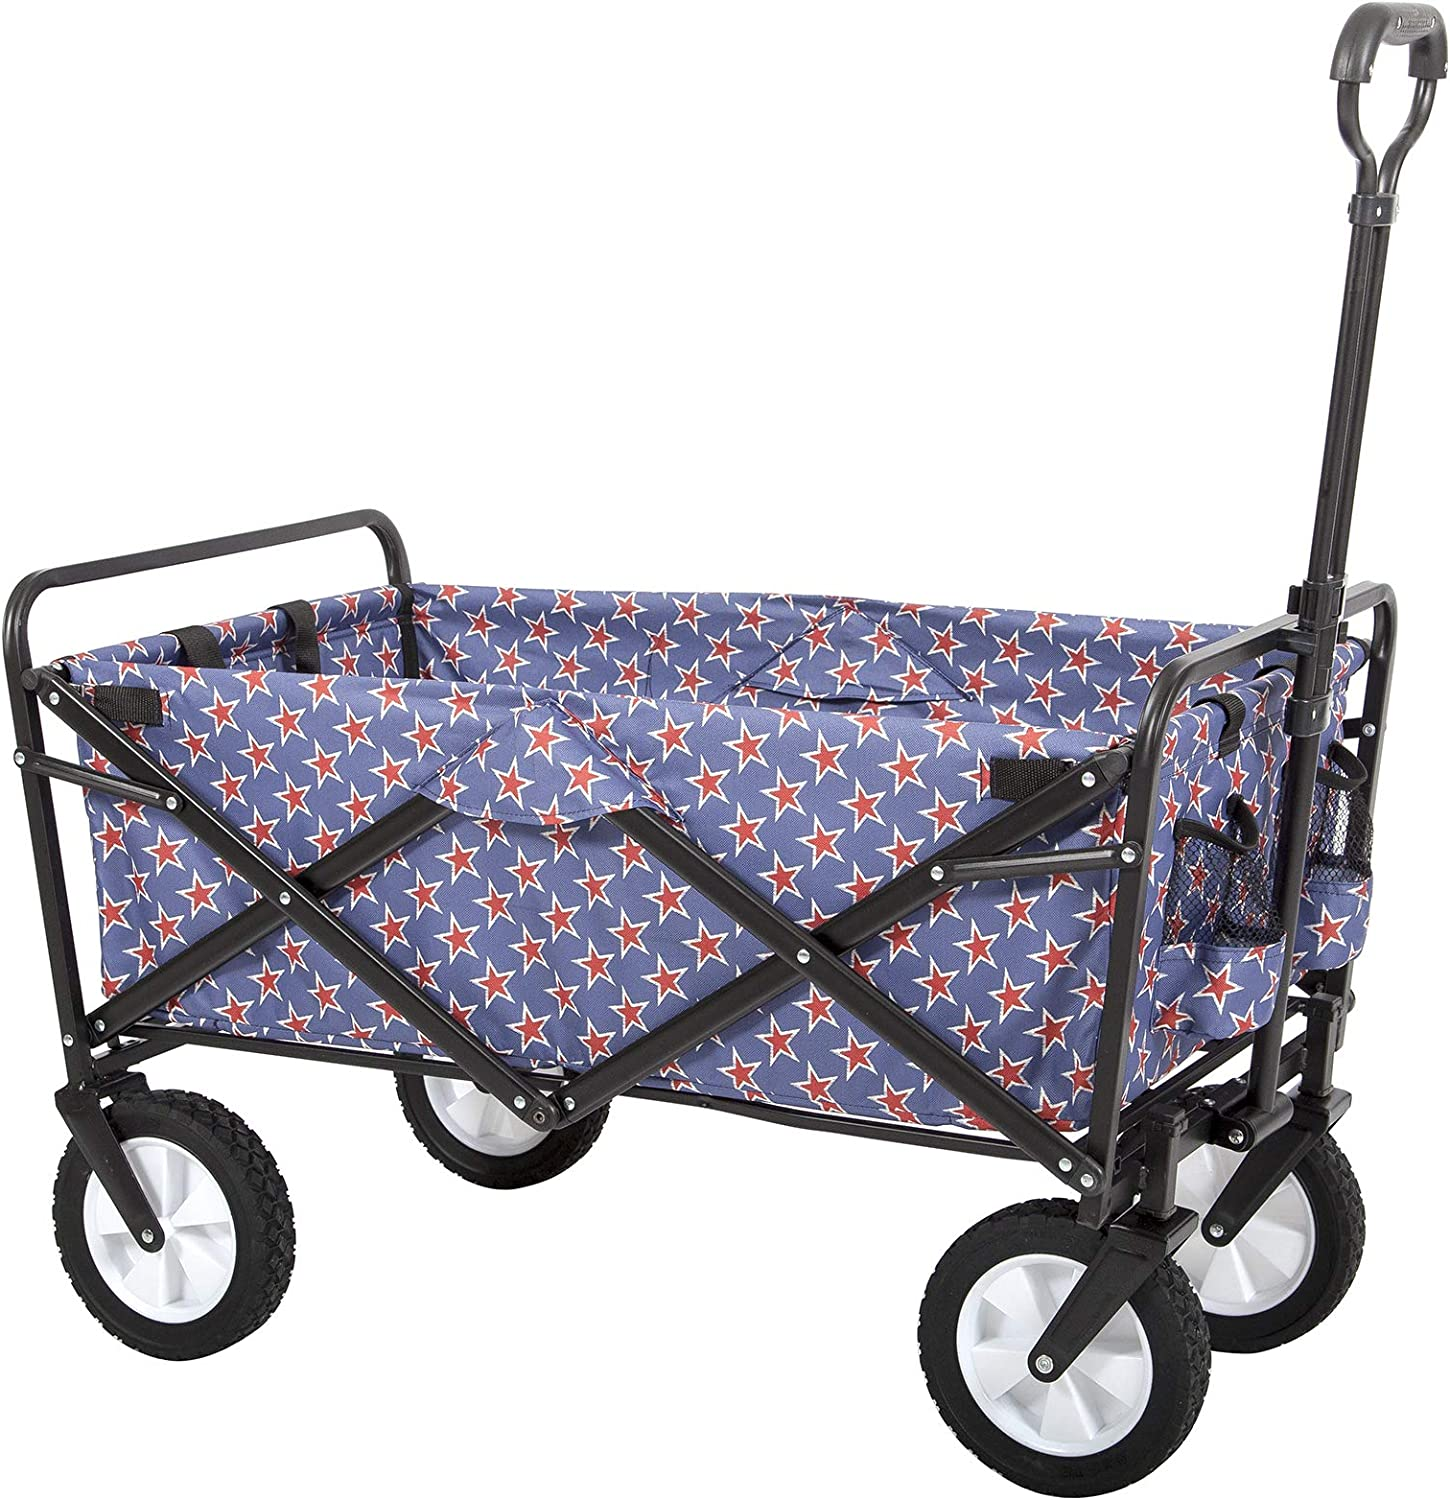 Mac Sports Collapsible Folding Outdoor Utility Wagon, Americana